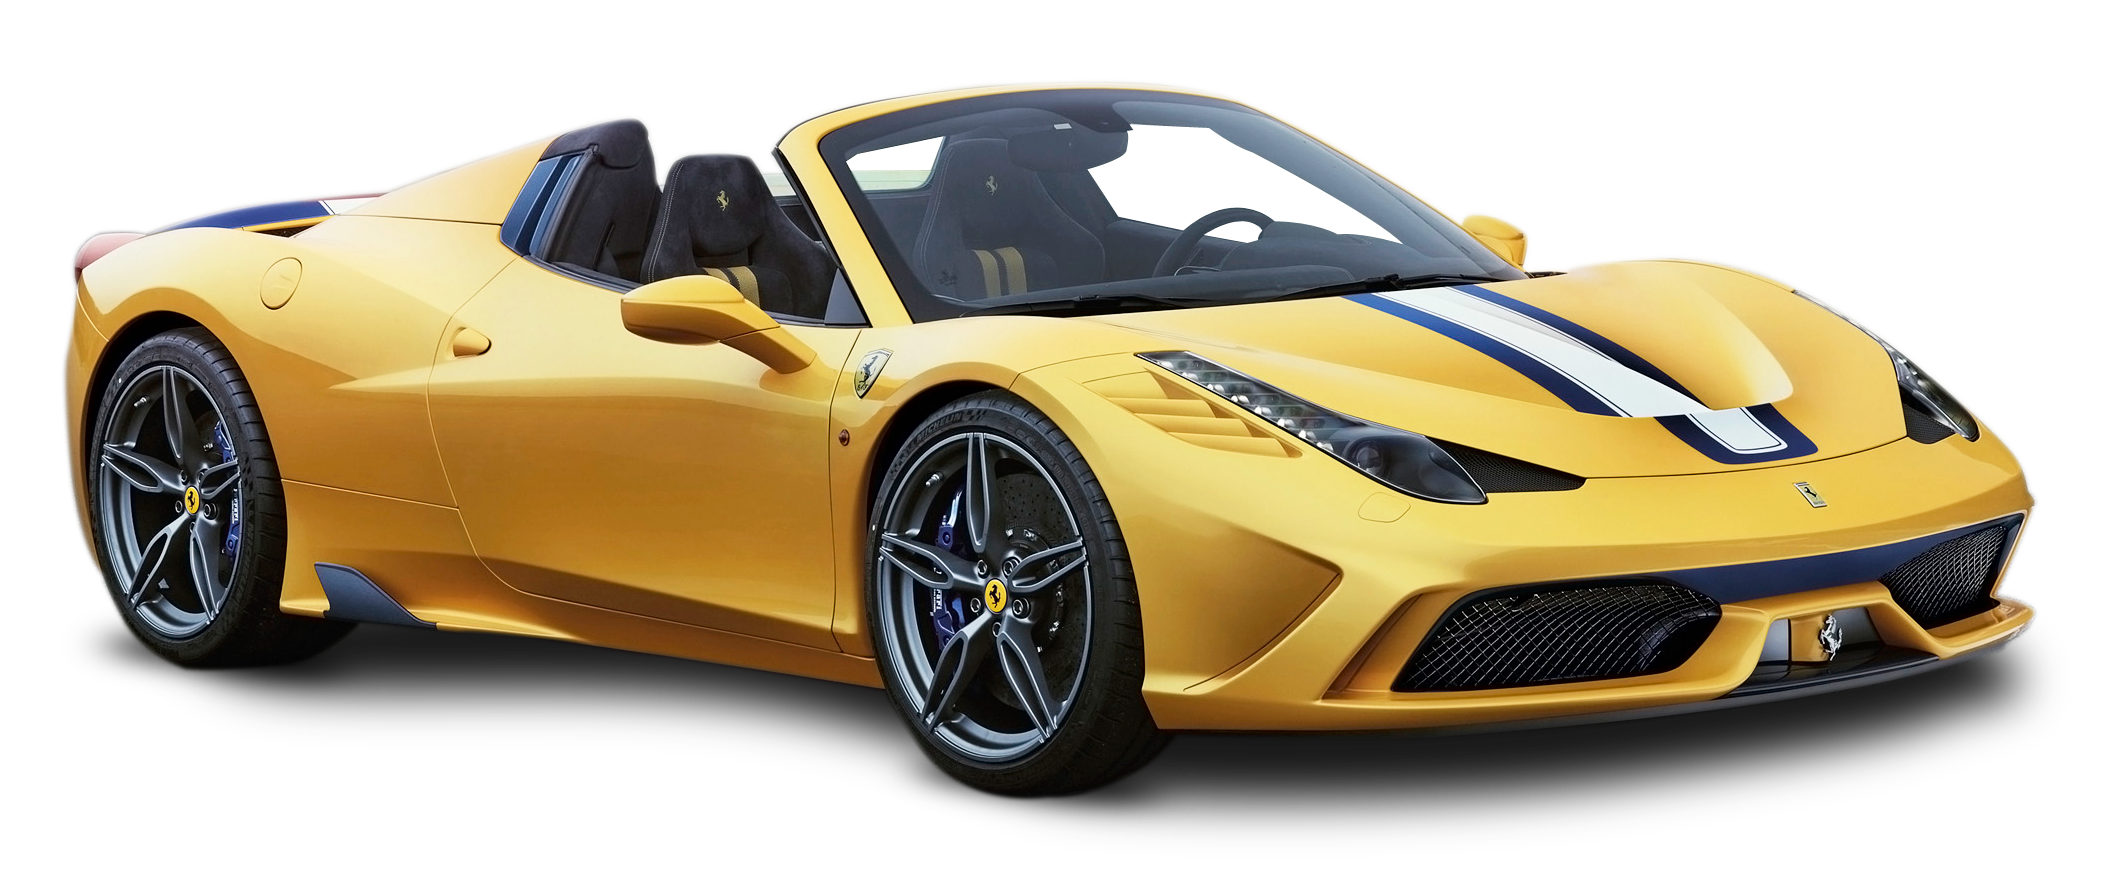 Yellow Ferrari 458 Speciale Car Png Image For Free Download